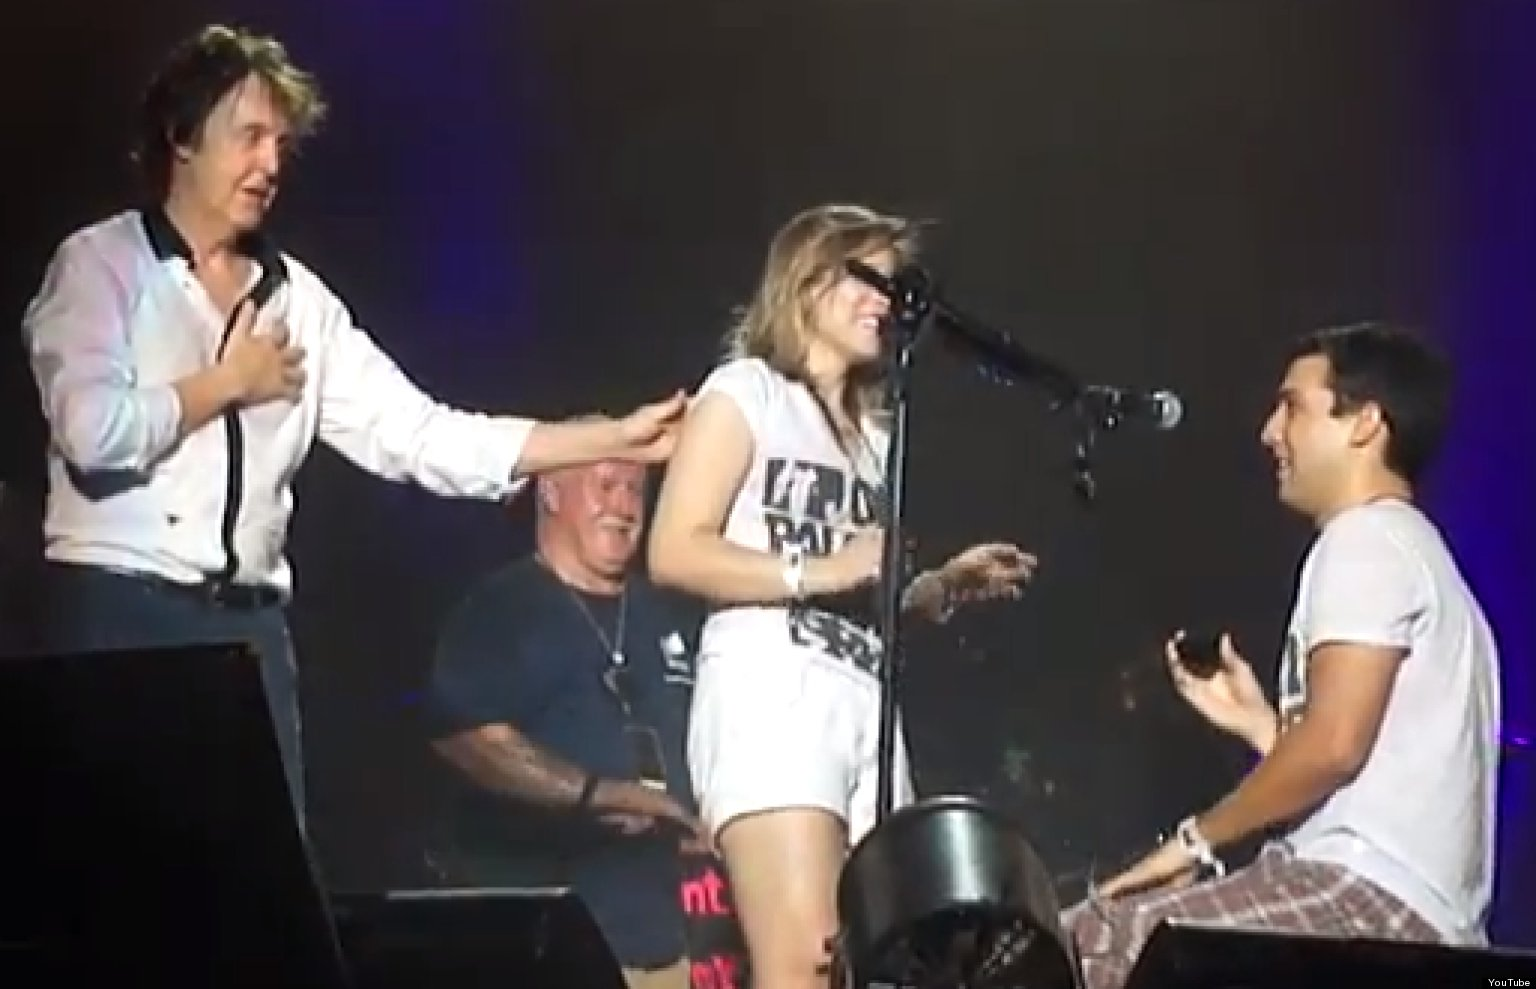 Paul McCartney Concert Includes Adorable Onstage Marriage Proposal VIDEO